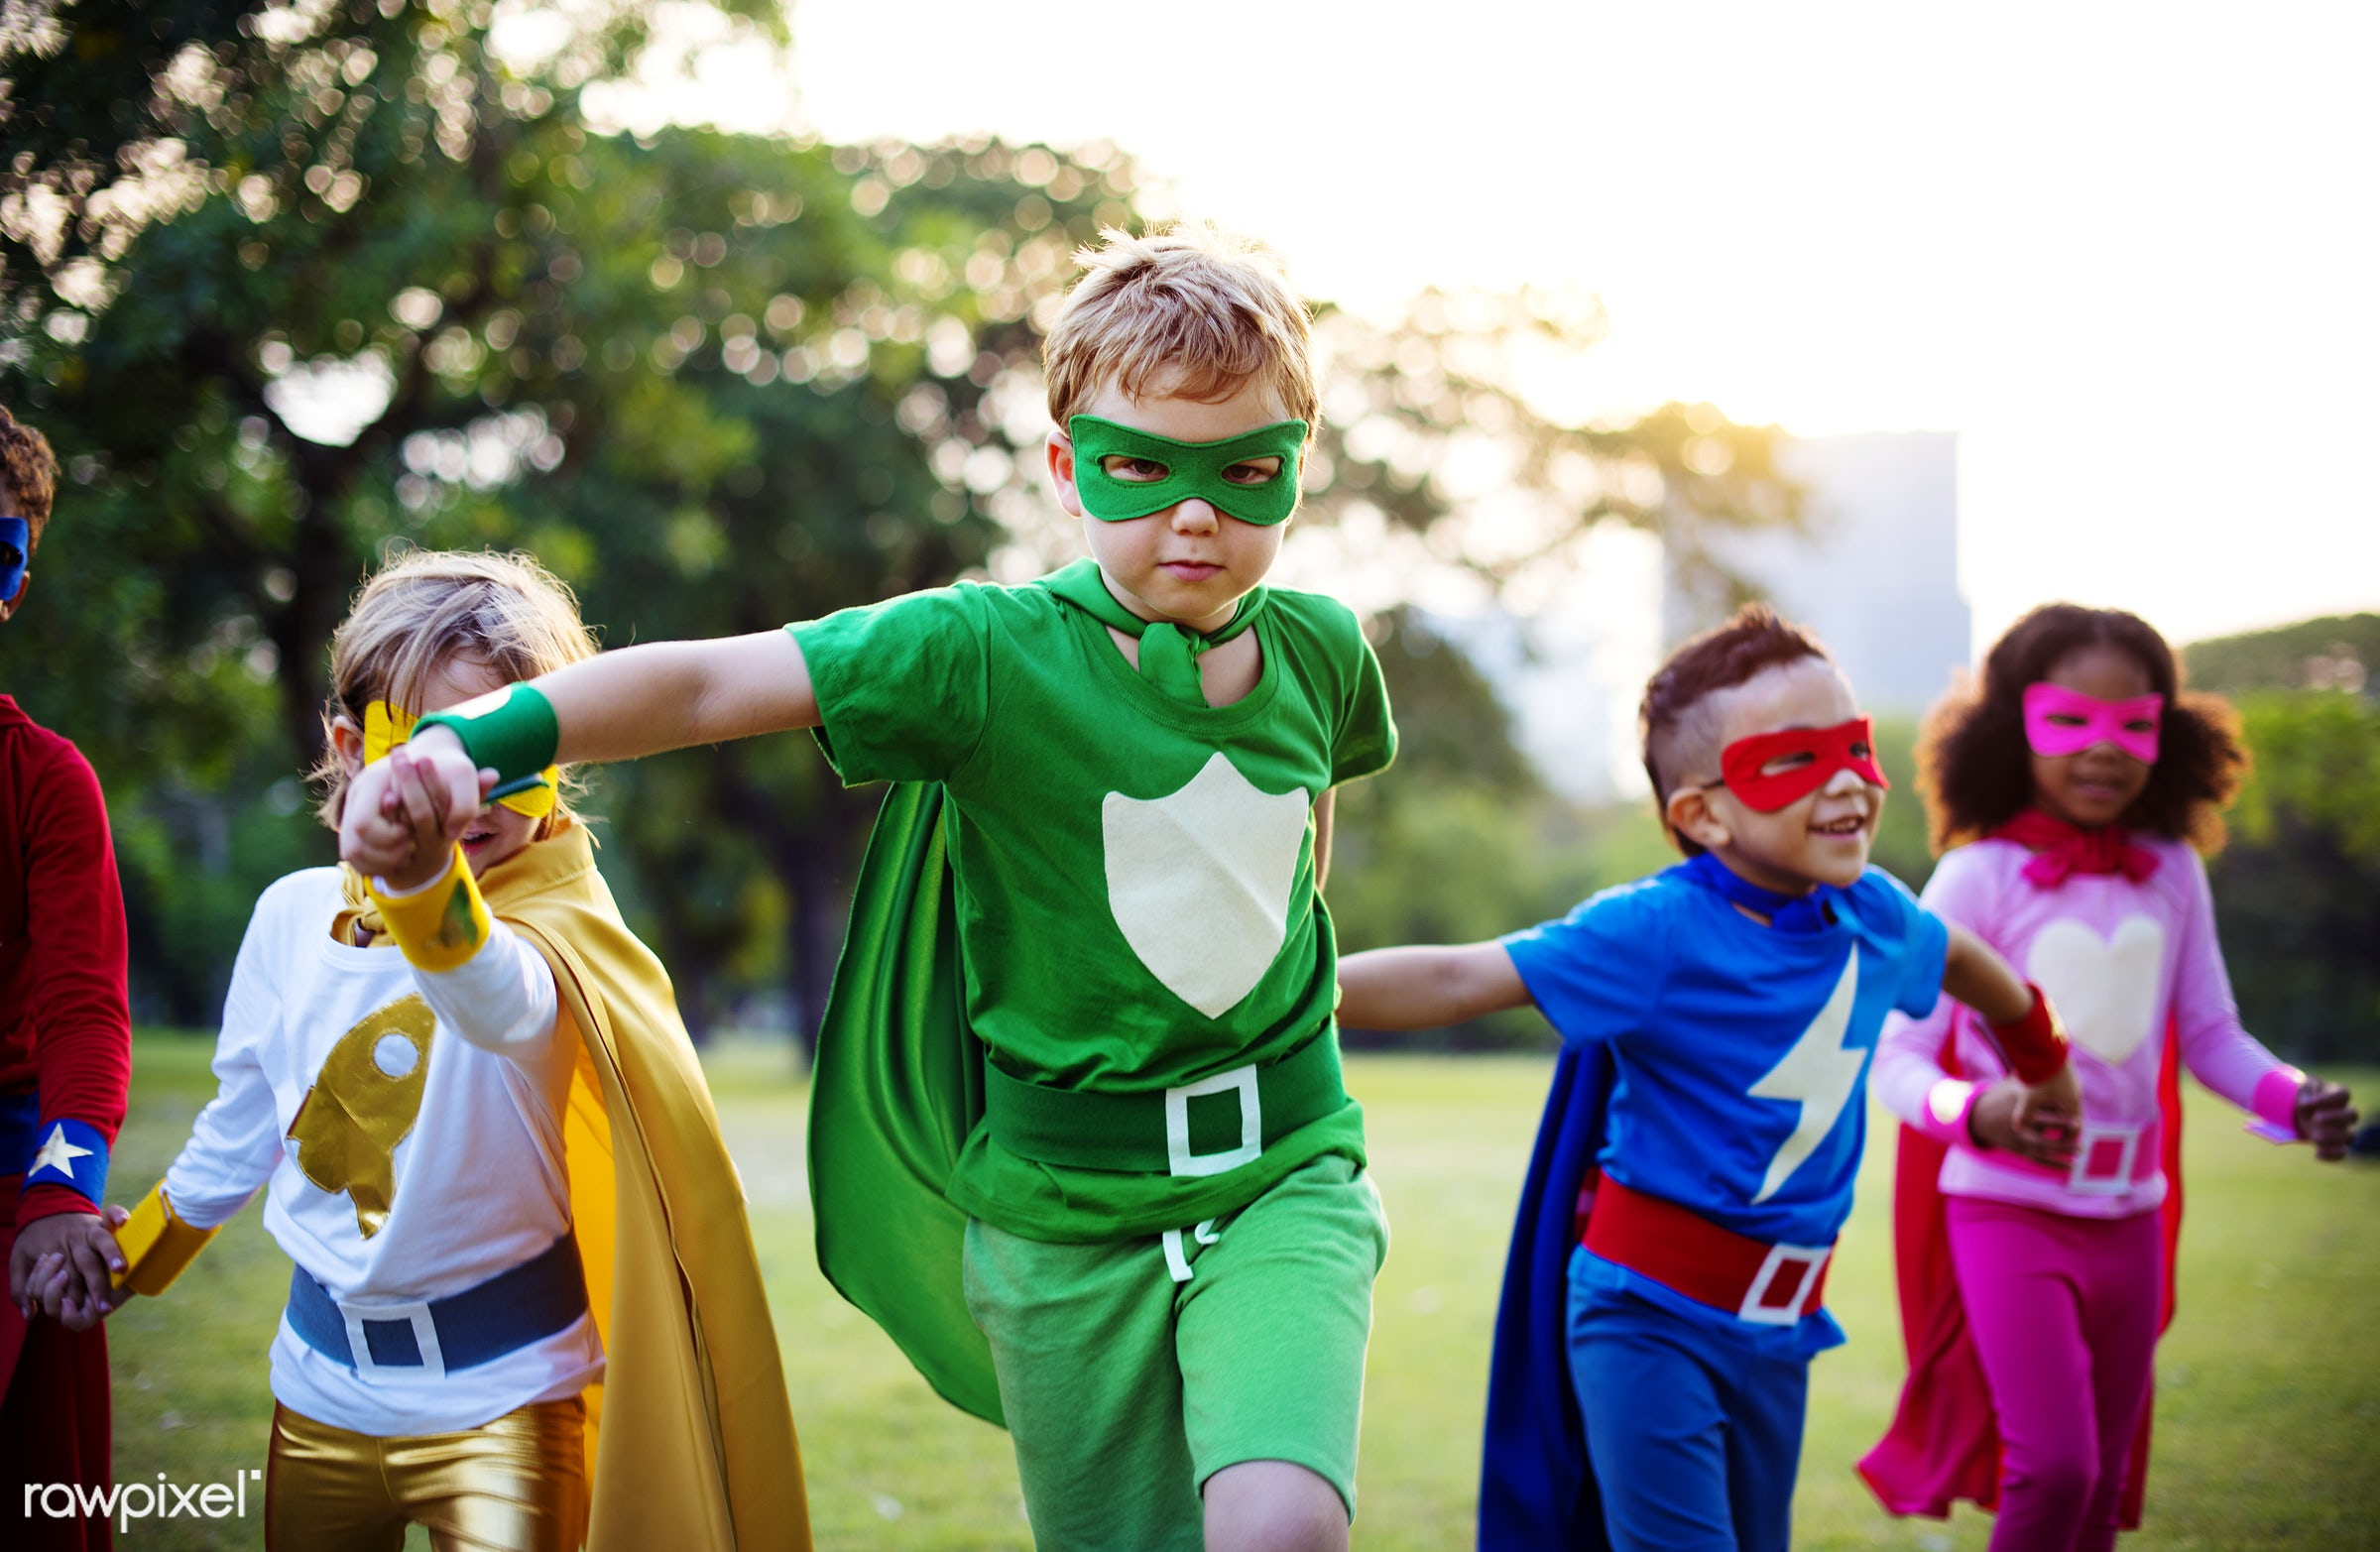 superhero, active, activities, adorable, african american, boys, caucasian, cheerful, child, childhood, children, costume,...